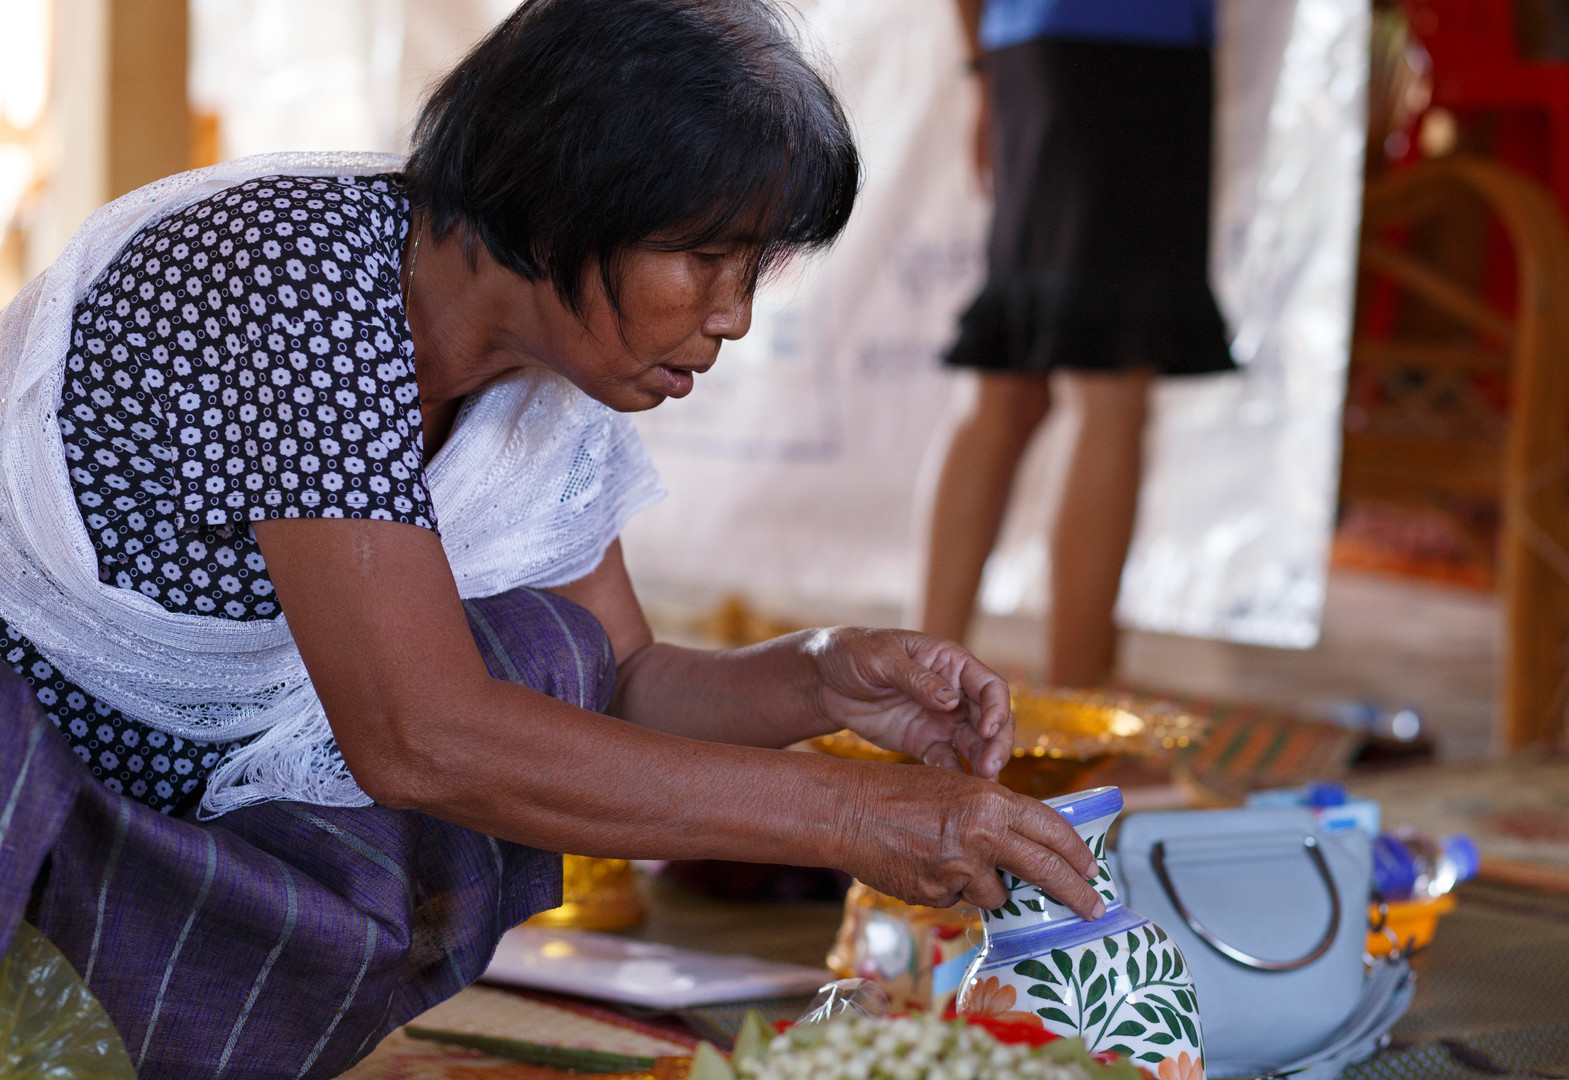 A village member prepares ceremonial petals before a testimonial thereapy ceremony organised by the Transcultural Psychosocial Organisation at Ta Ann Village, Ta Ann Commune, Kralanh district, Siem Reap province, Cambodia on the 18th of January 2018.